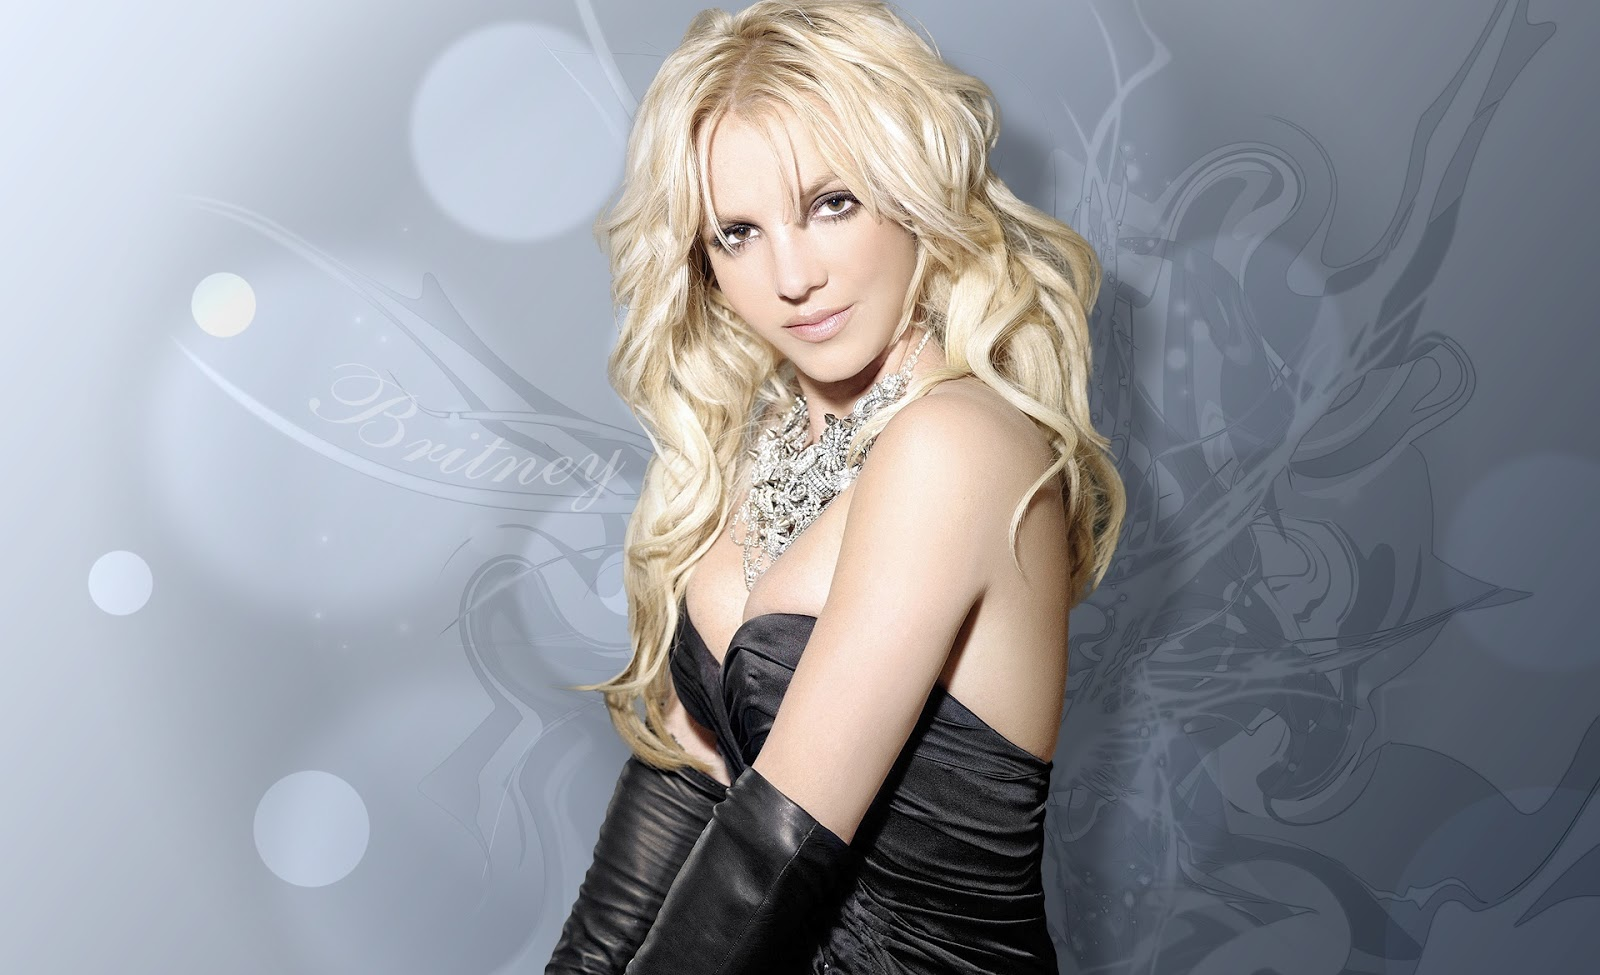 Britney Spears New HD Wallpaper 2013 | World Of HD Wallpapers